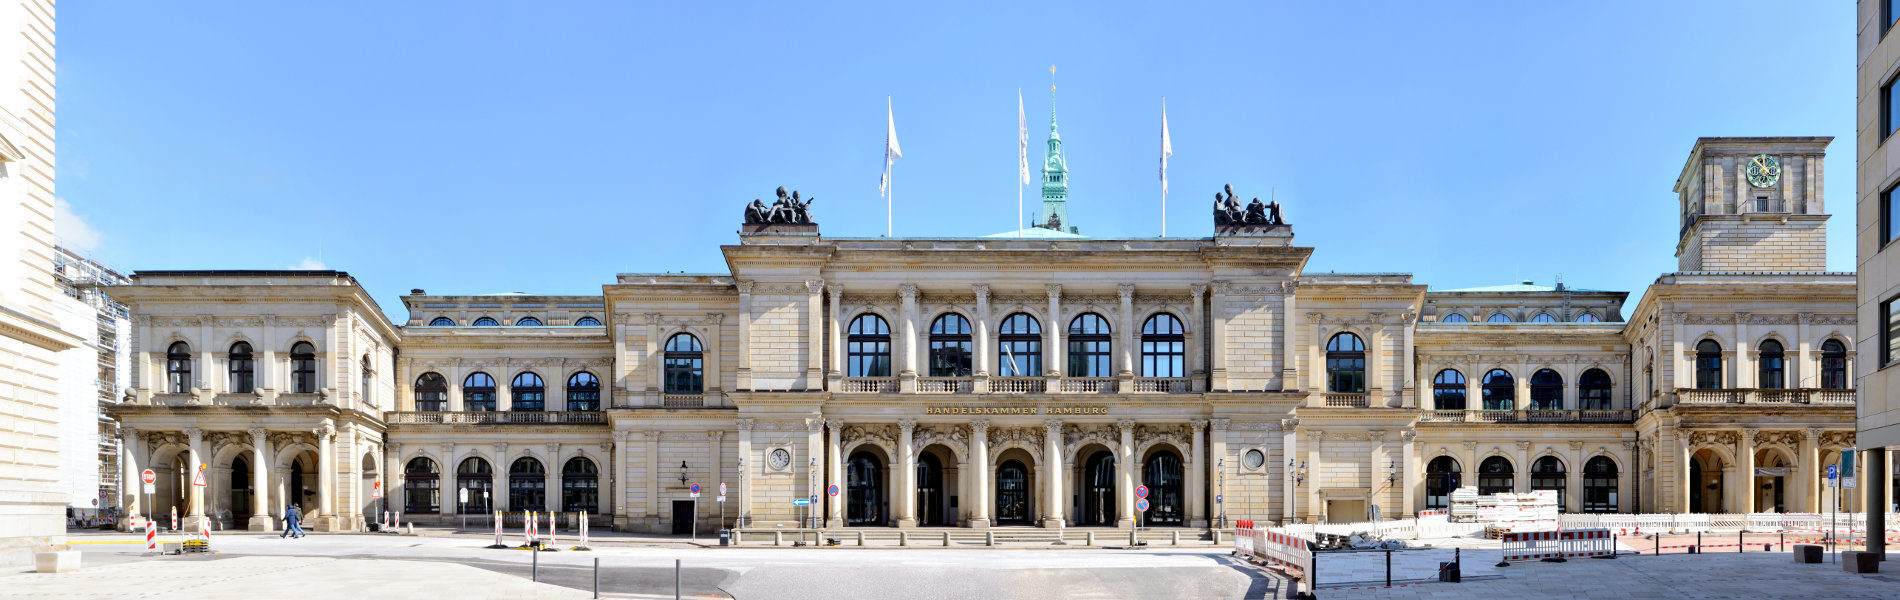 Bourse | Chamber of Commerce Hamburg